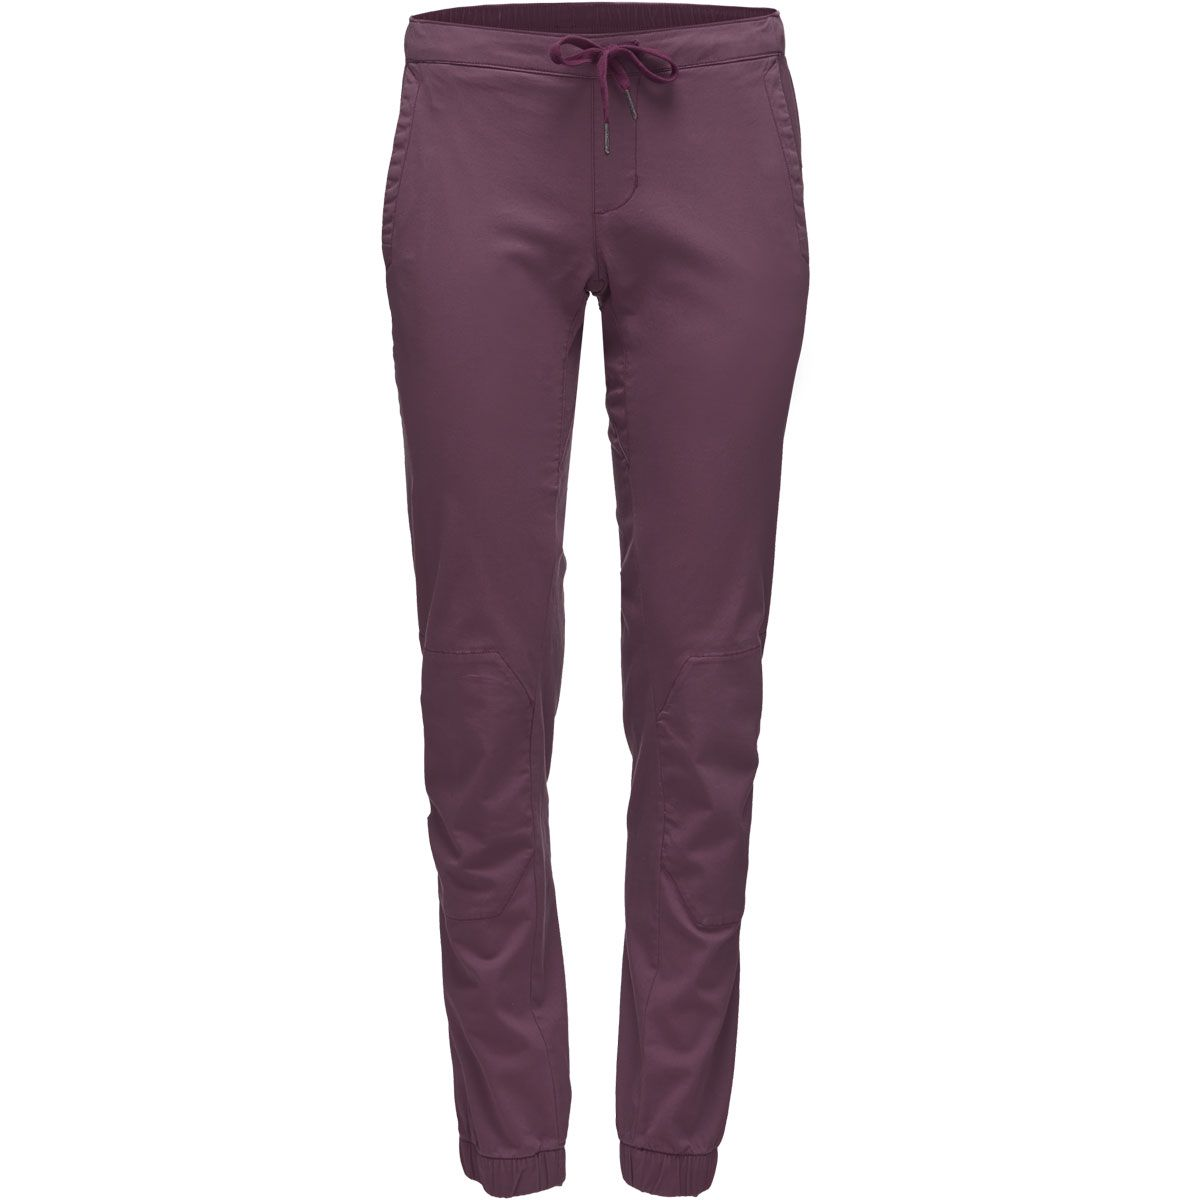 Black Diamond Damen Notion Kletterhose (Größe L, Lila) | Kletterhosen > Damen